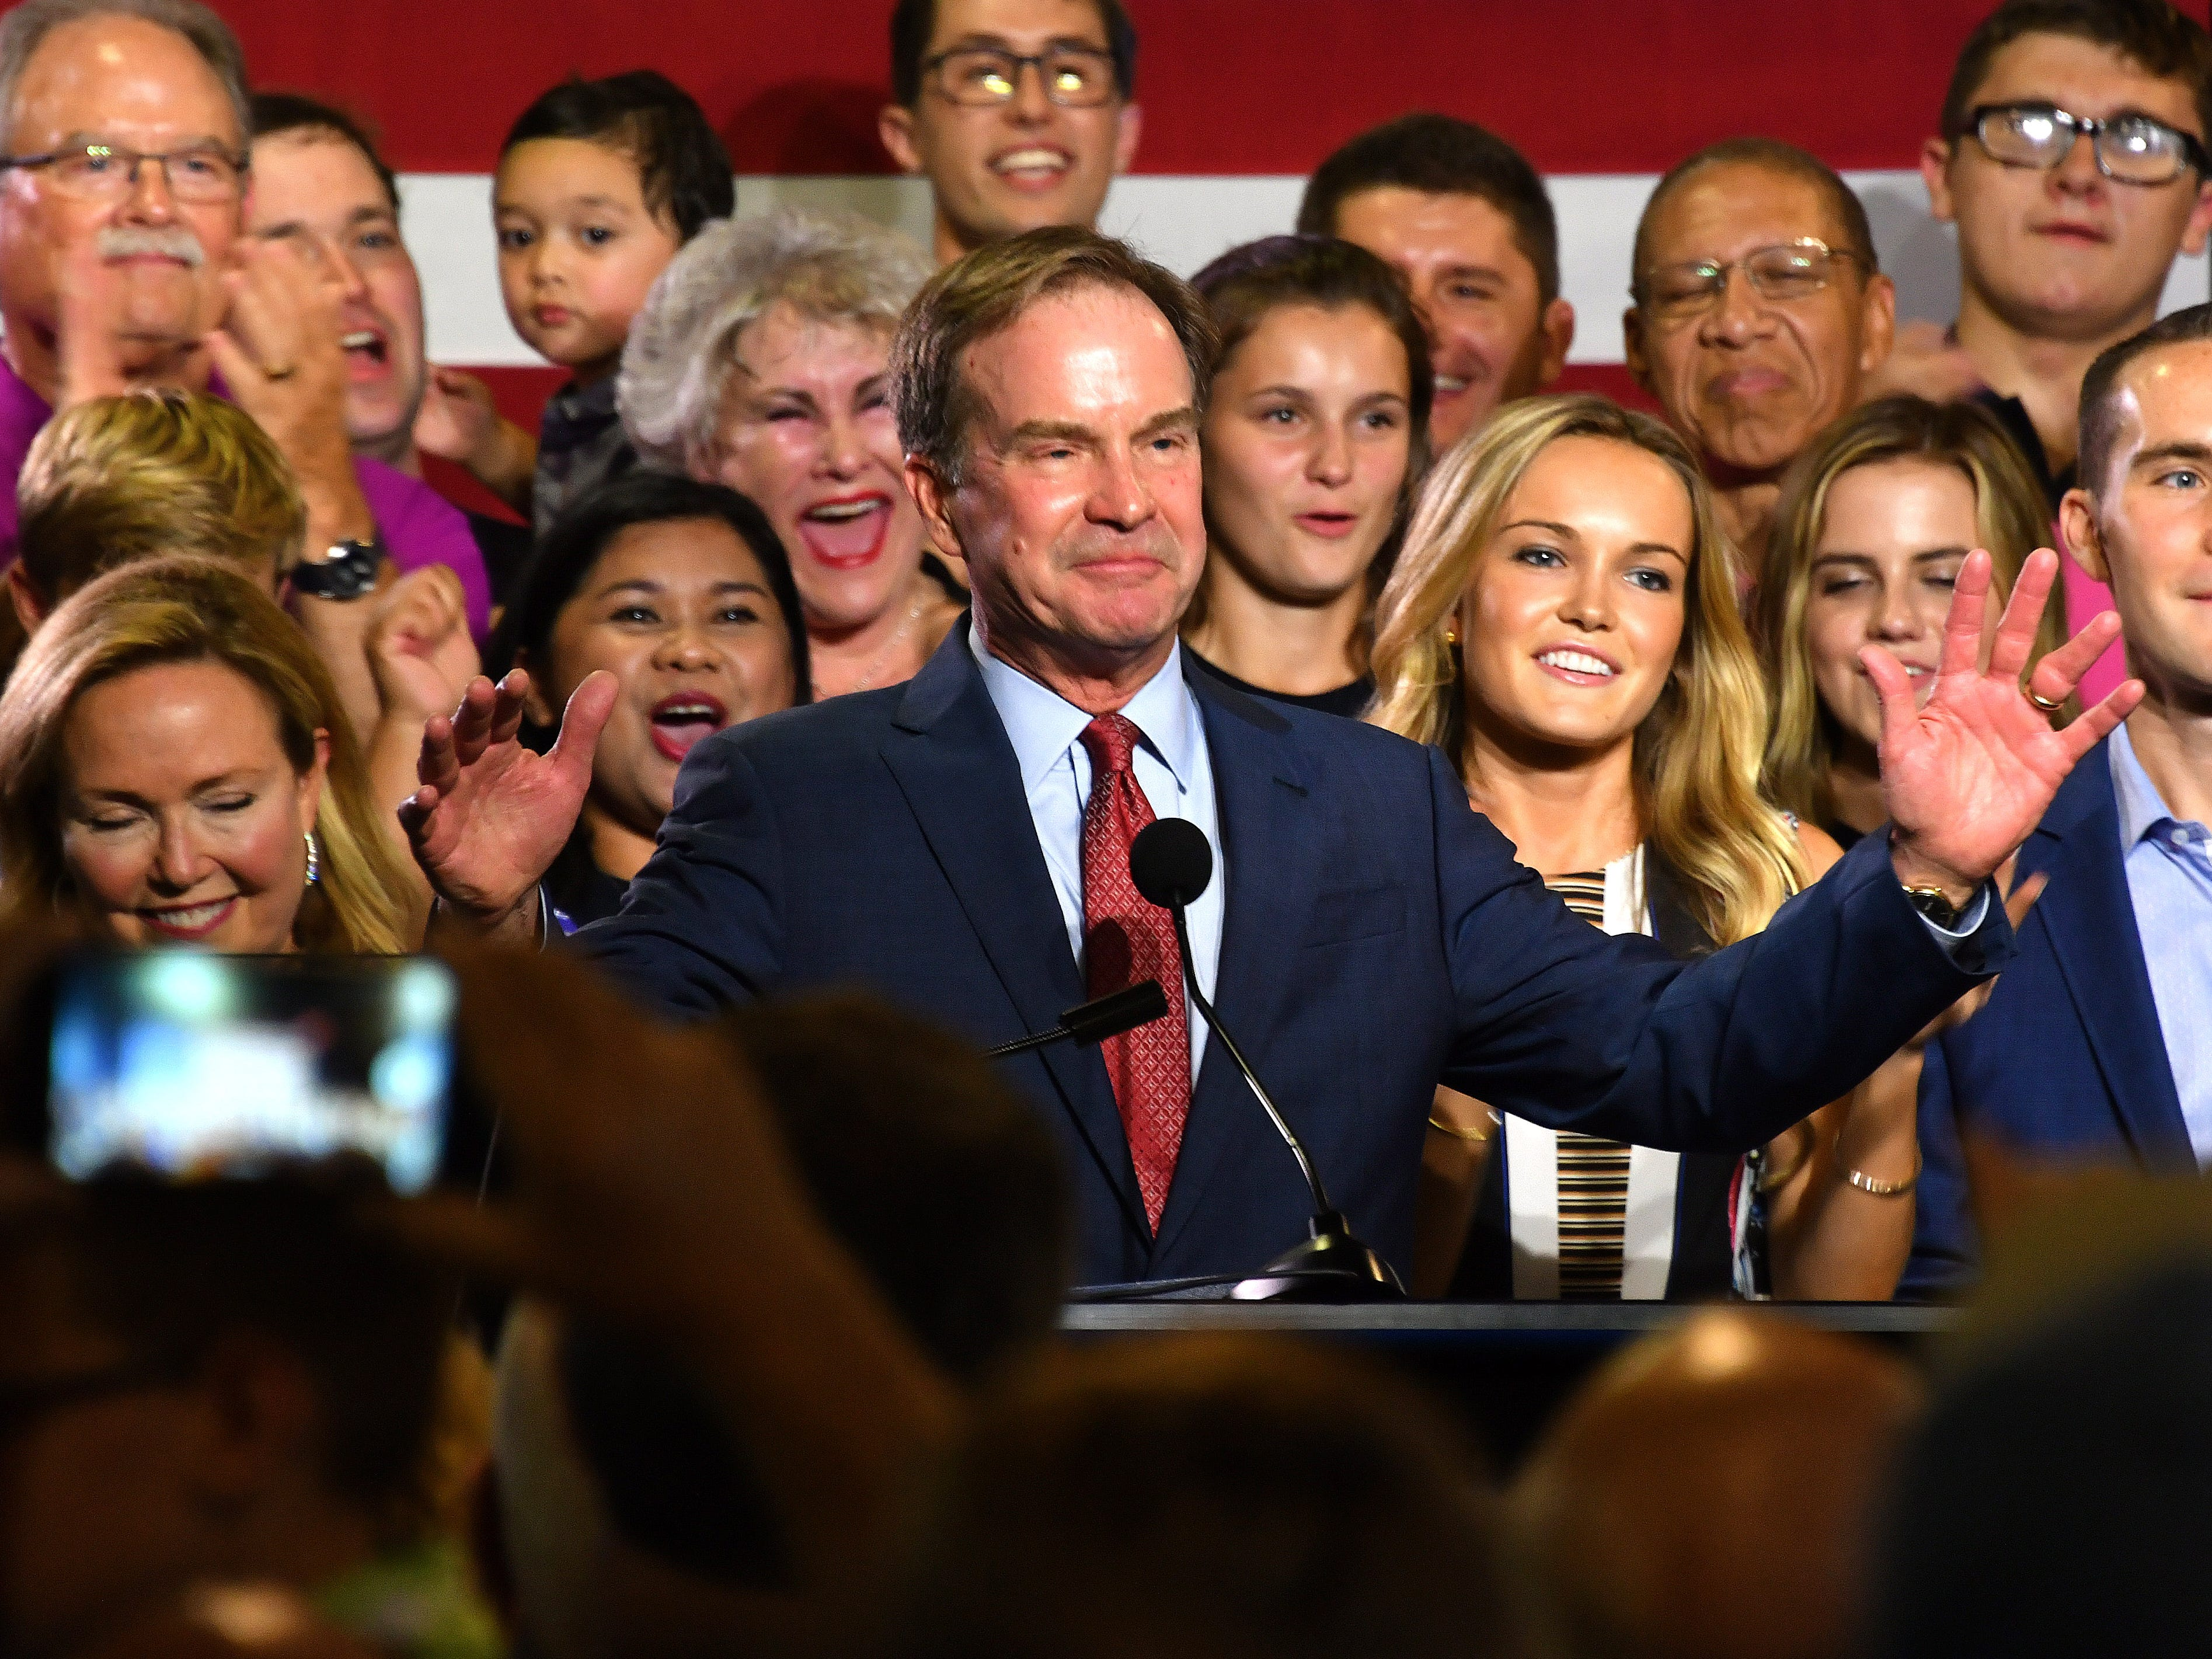 Michigan Attorney General Bill Schuette and his family greet supporters and announce he has won on primary election day, Aug 7, 2018 at Schuette's post-election event at Dow Diamond, the home of Midland's minor league baseball team.